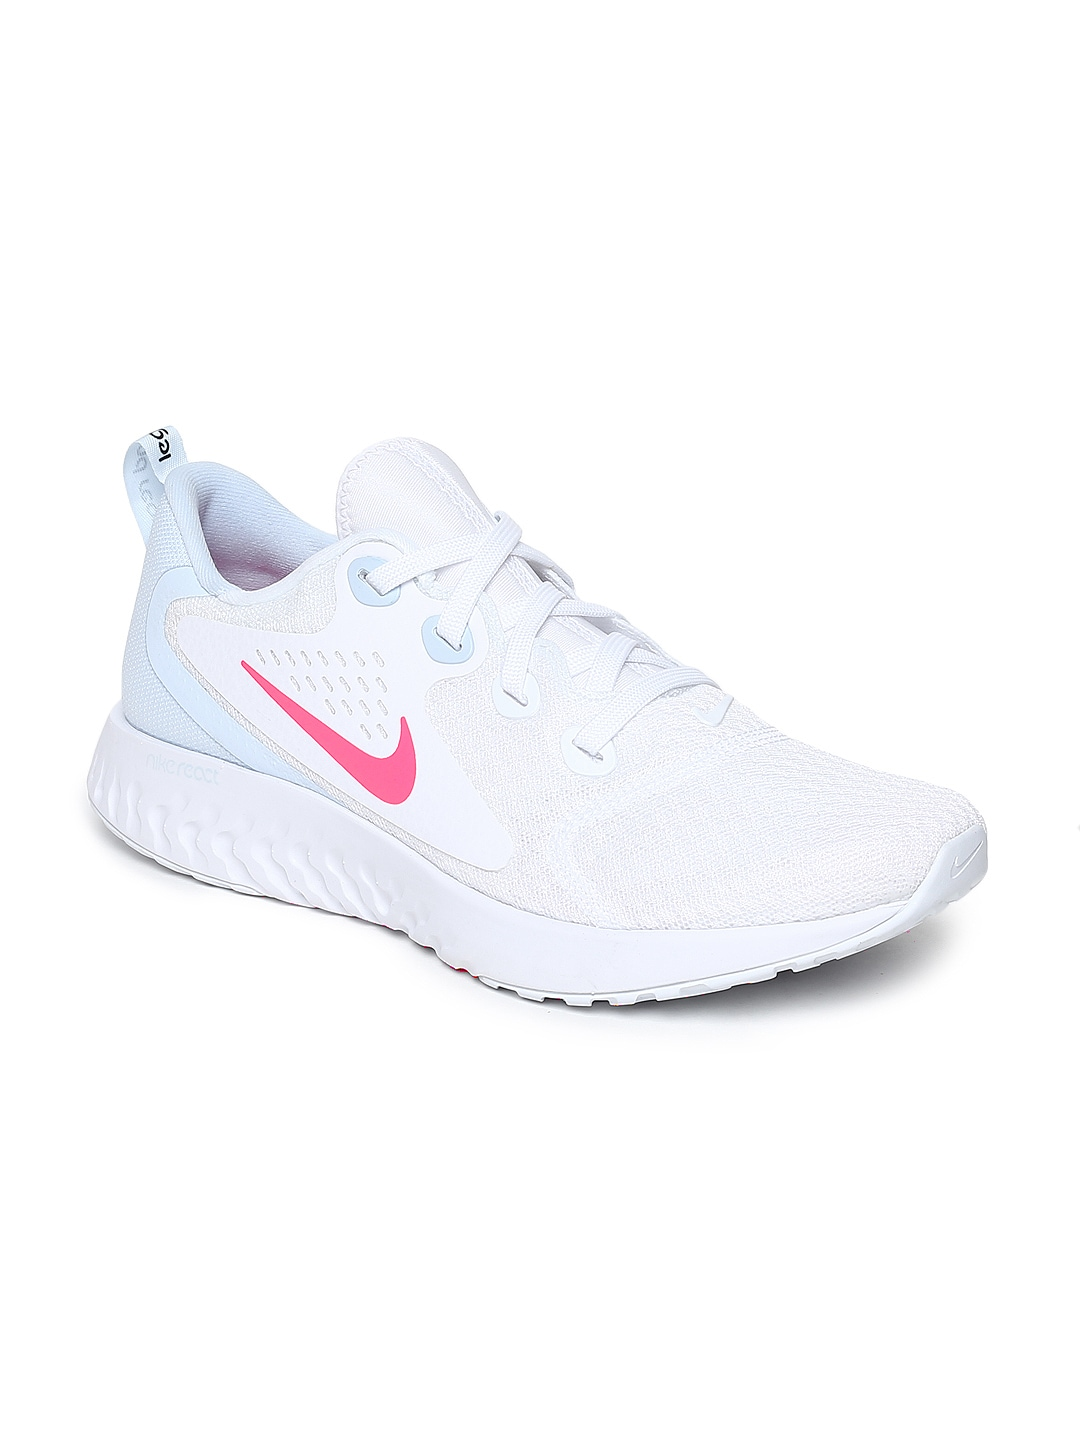 quality design 5d255 9dd6c Nike Sport Shoe - Buy Nike Sport Shoes At Best Price Online   Myntra